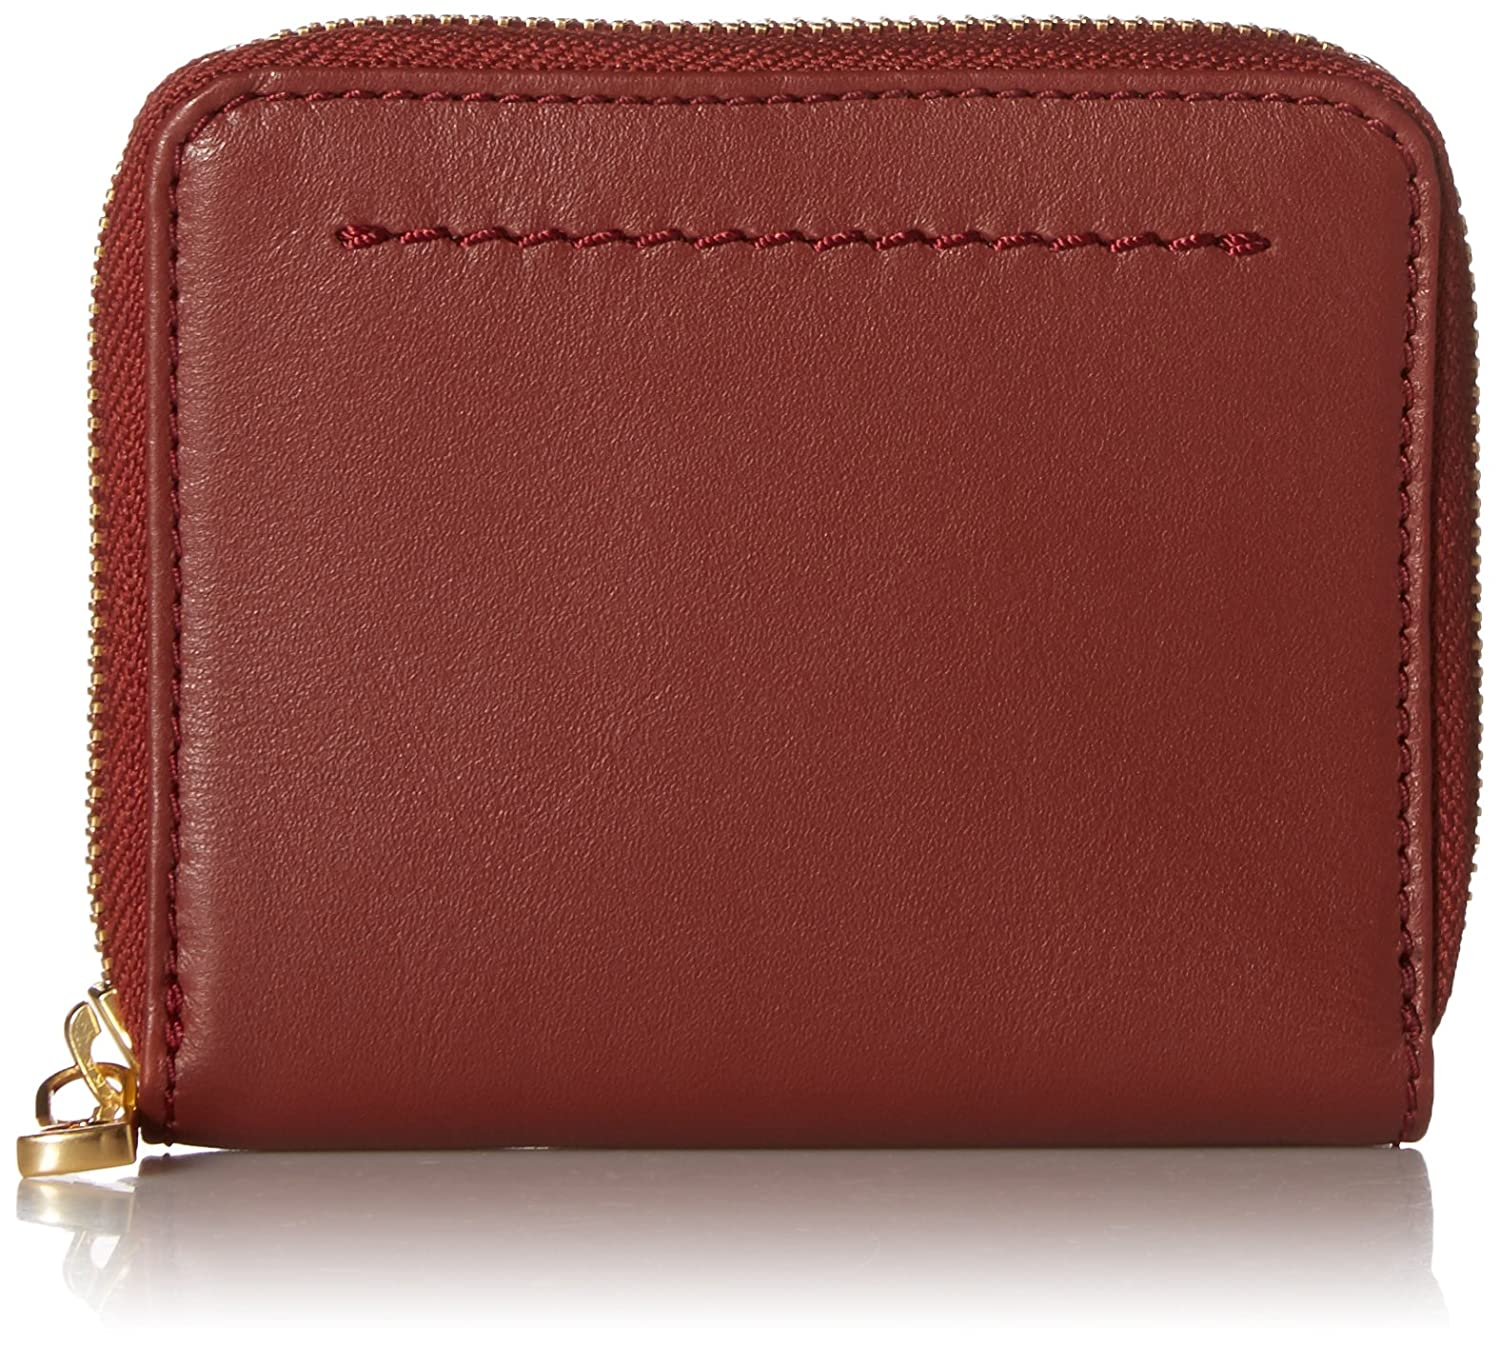 38b9b1c3a00 Amazon.com: Cole Haan Zoe Small Zip Around Leather Wallet: Clothing